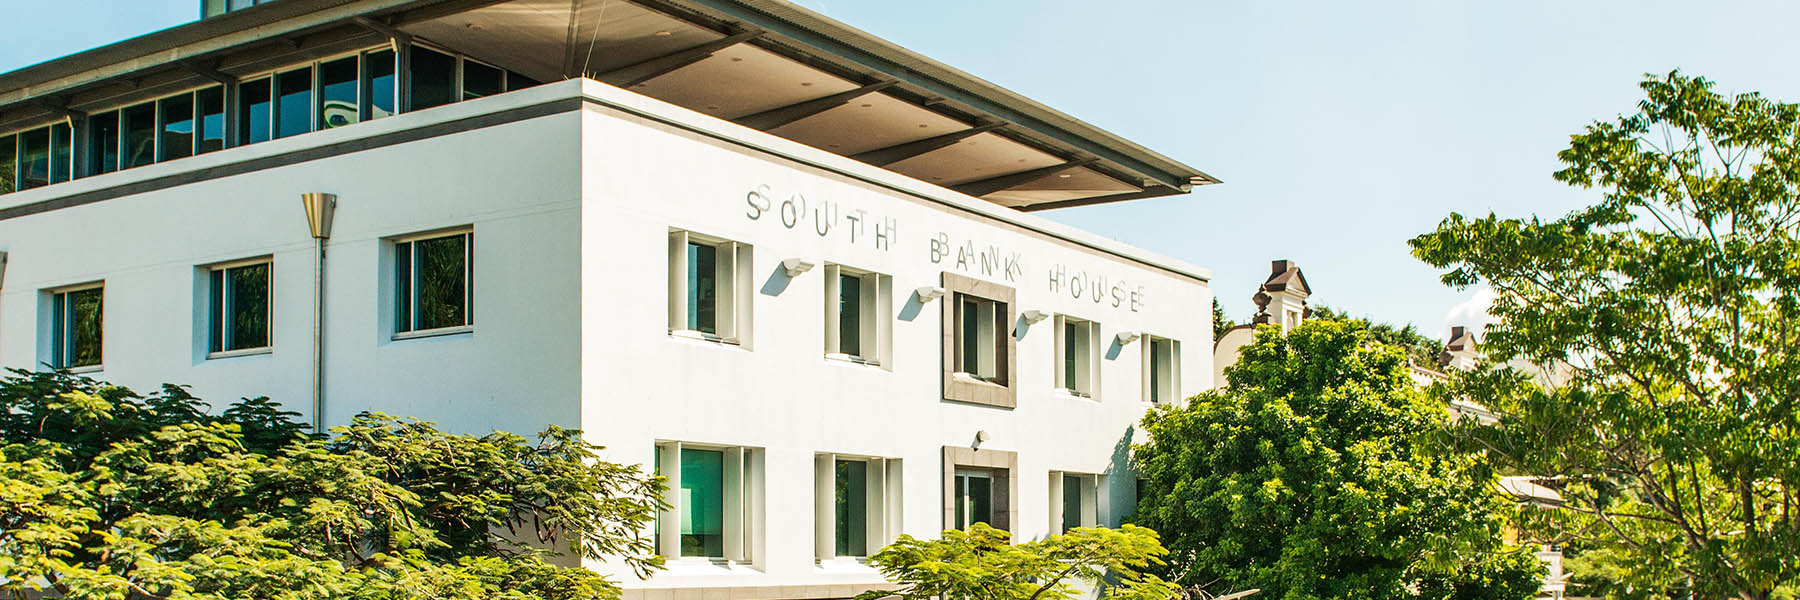 South Bank House